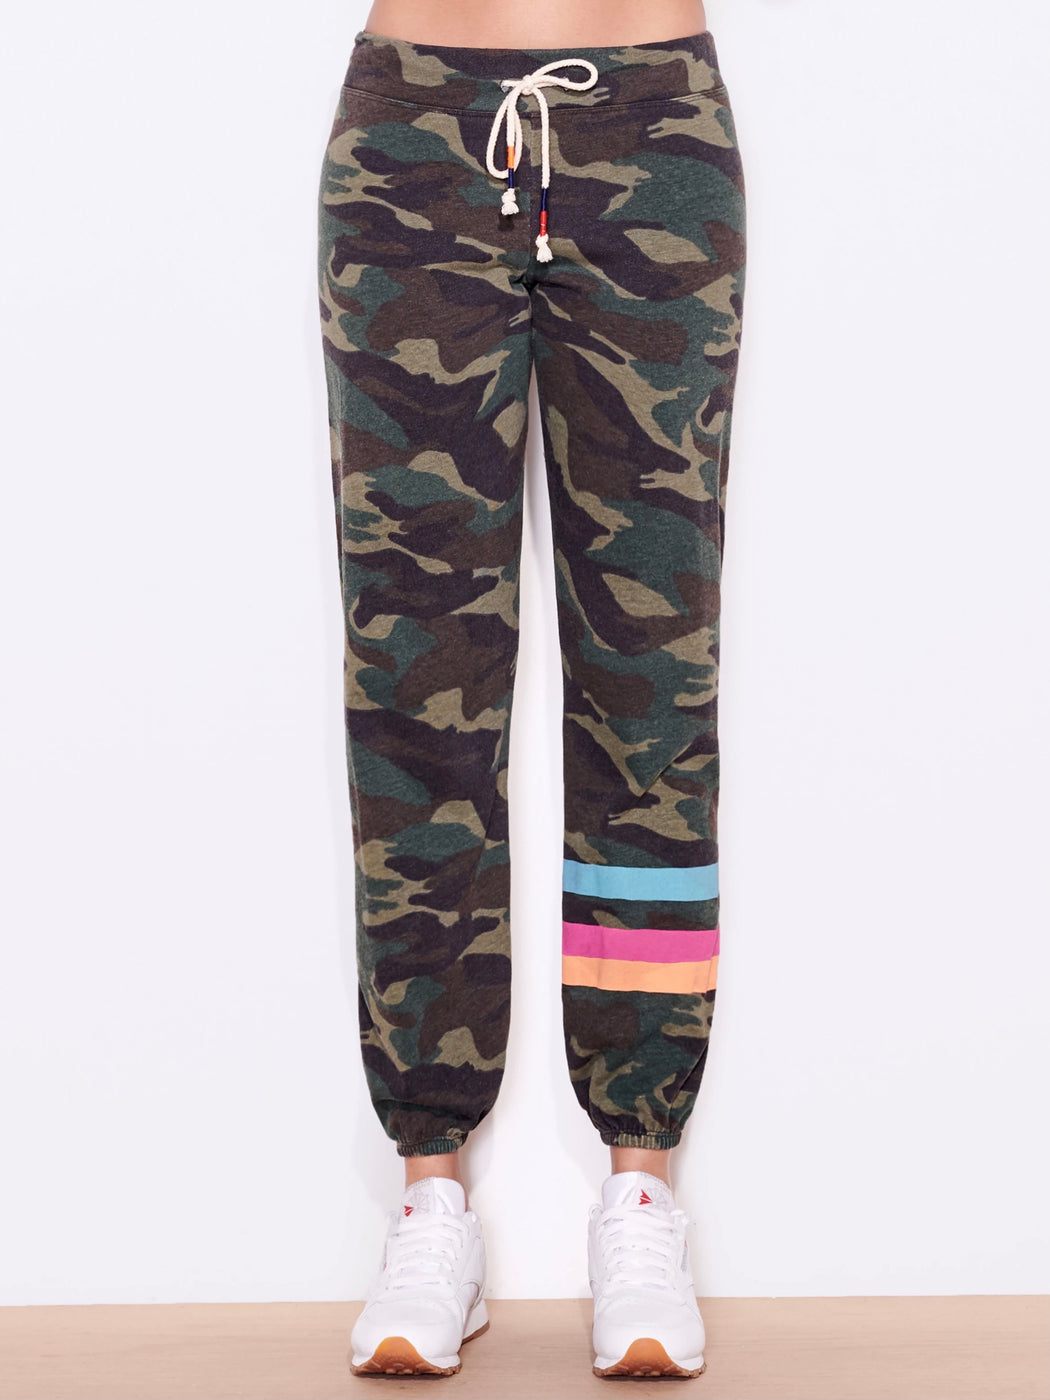 Sundry Stripes Camo Sweatpants